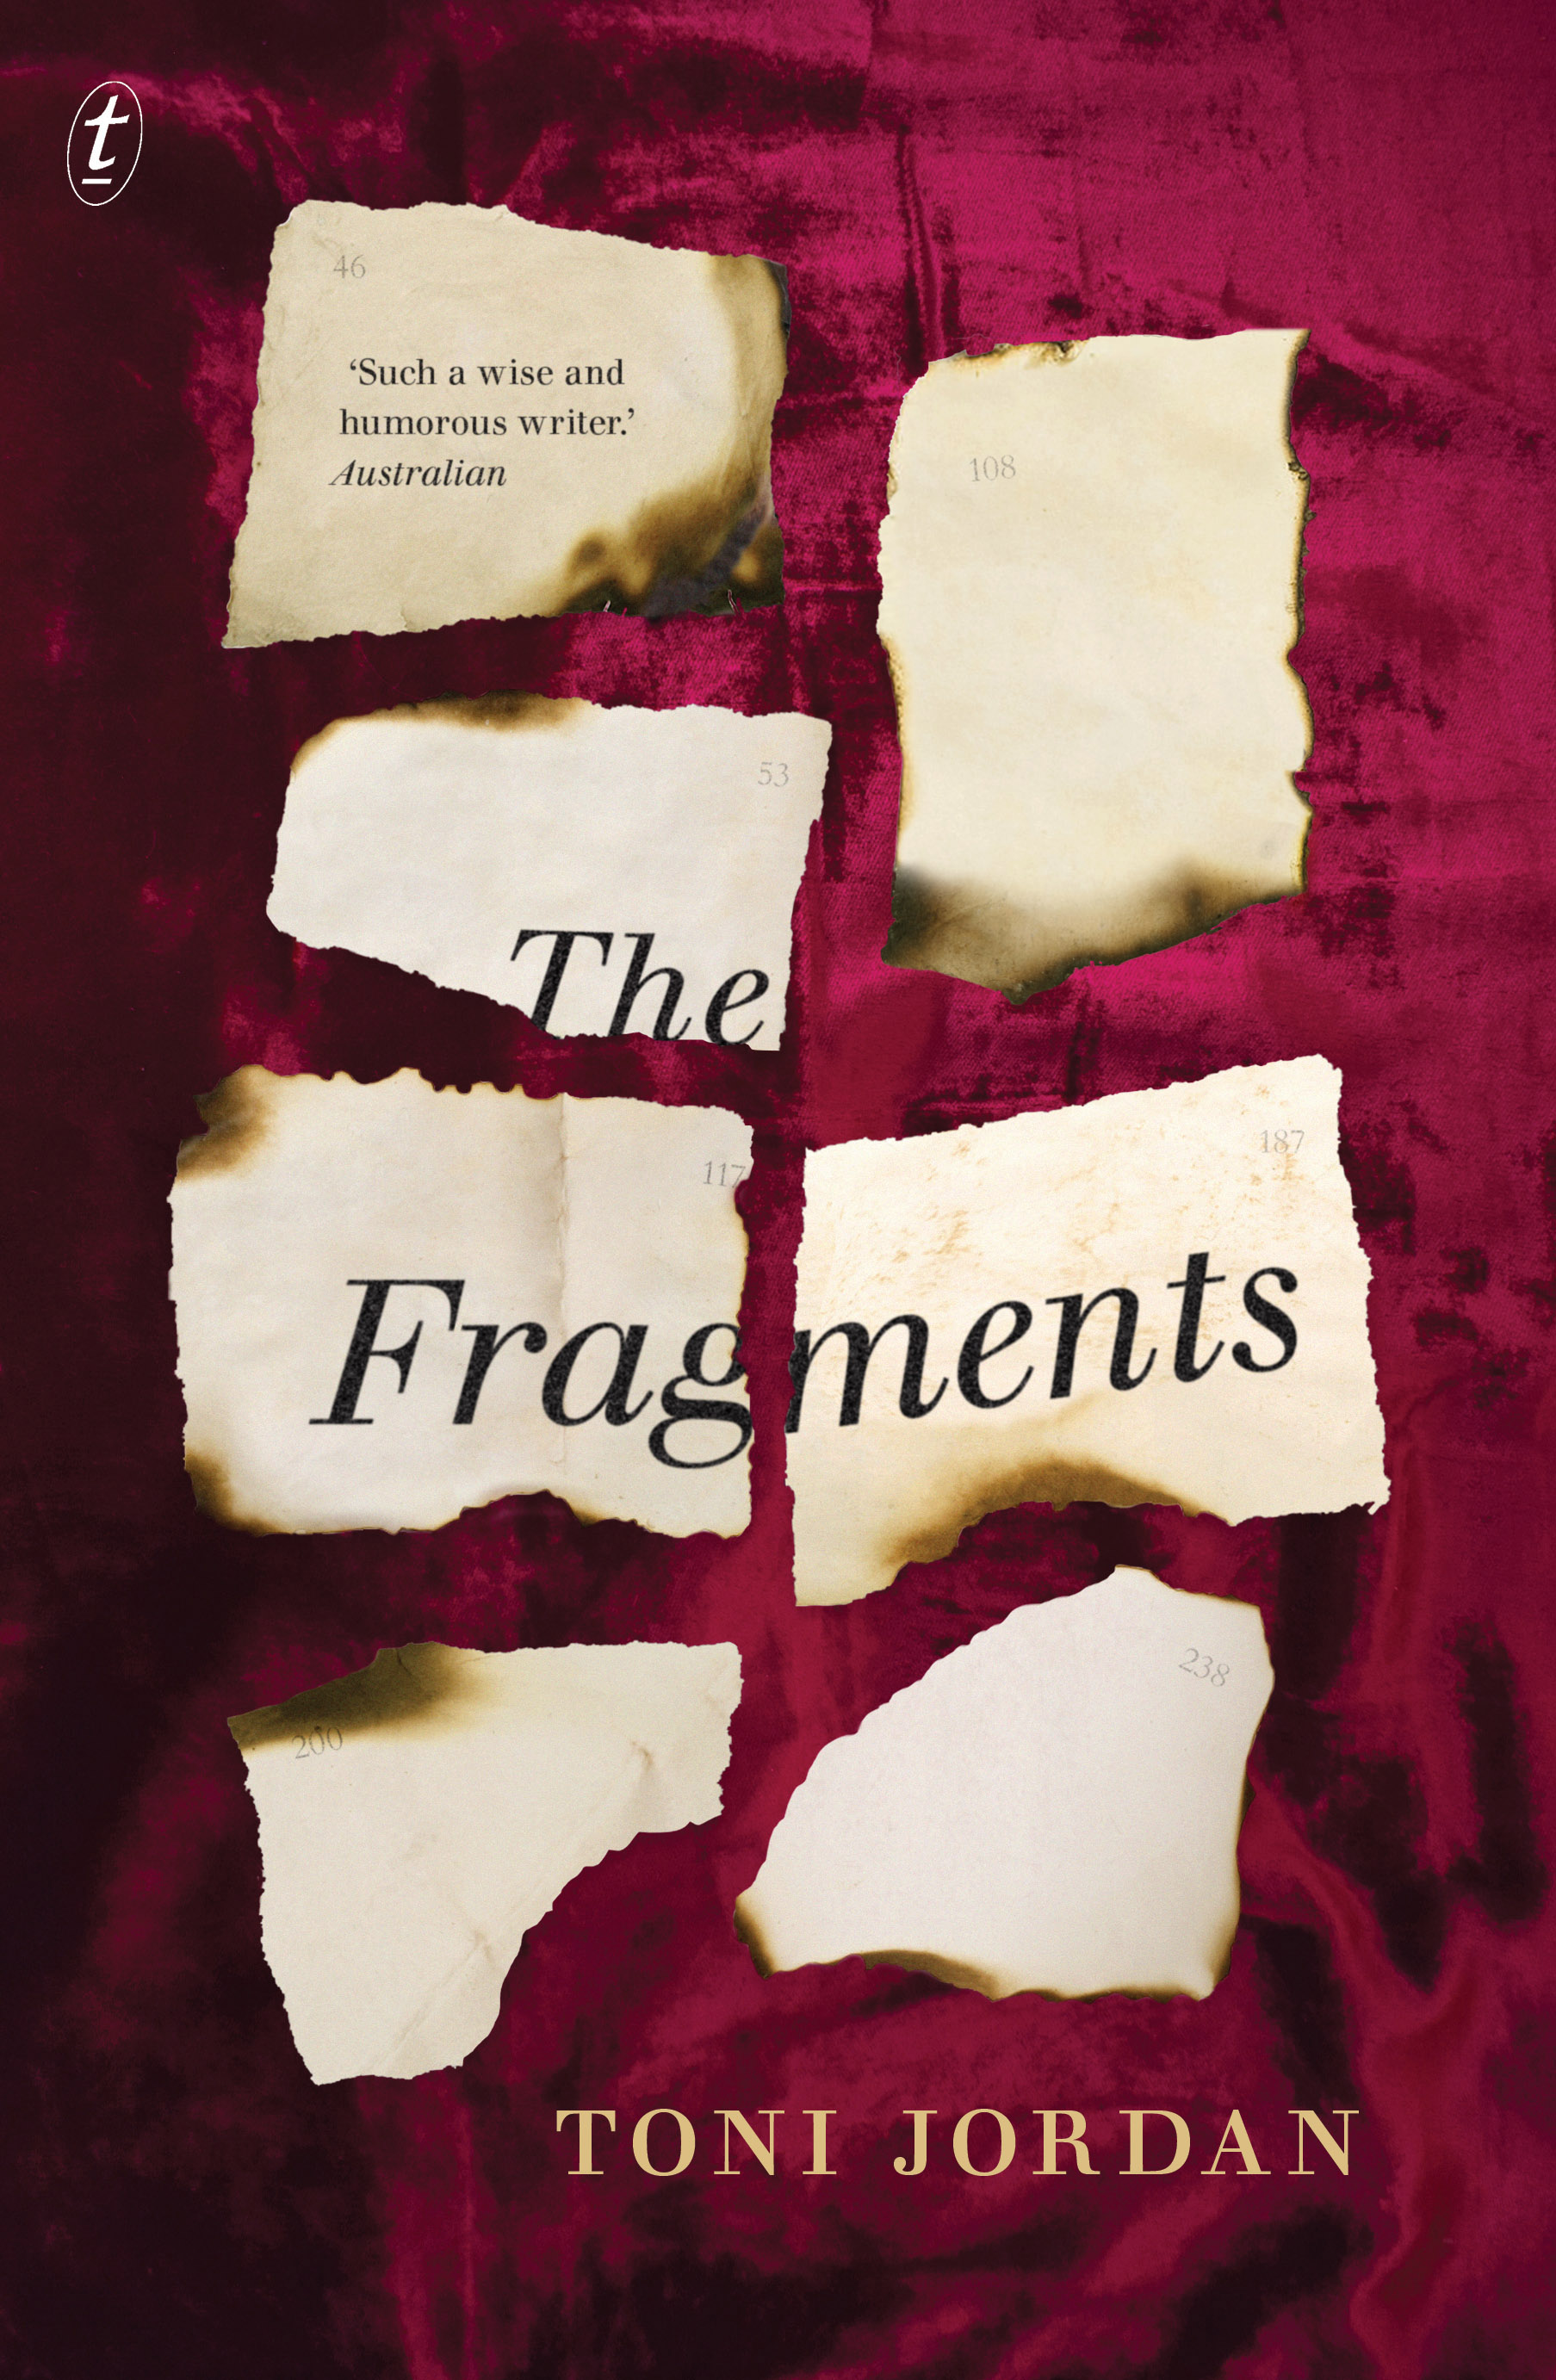 Image result for fragments book